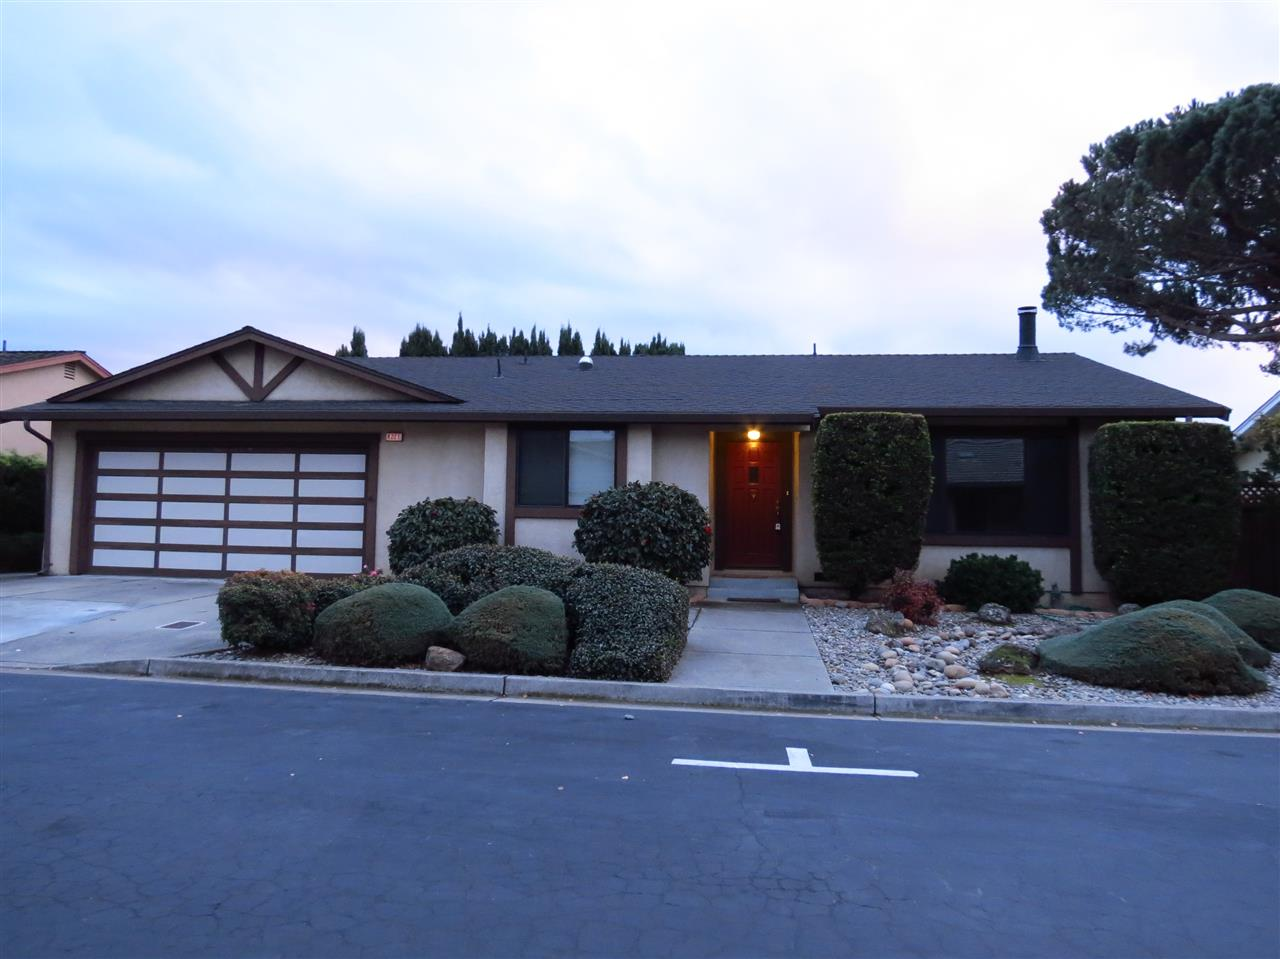 Single Family Home for Sale at 4221 Beverly Place 4221 Beverly Place Castro Valley, California 94546 United States